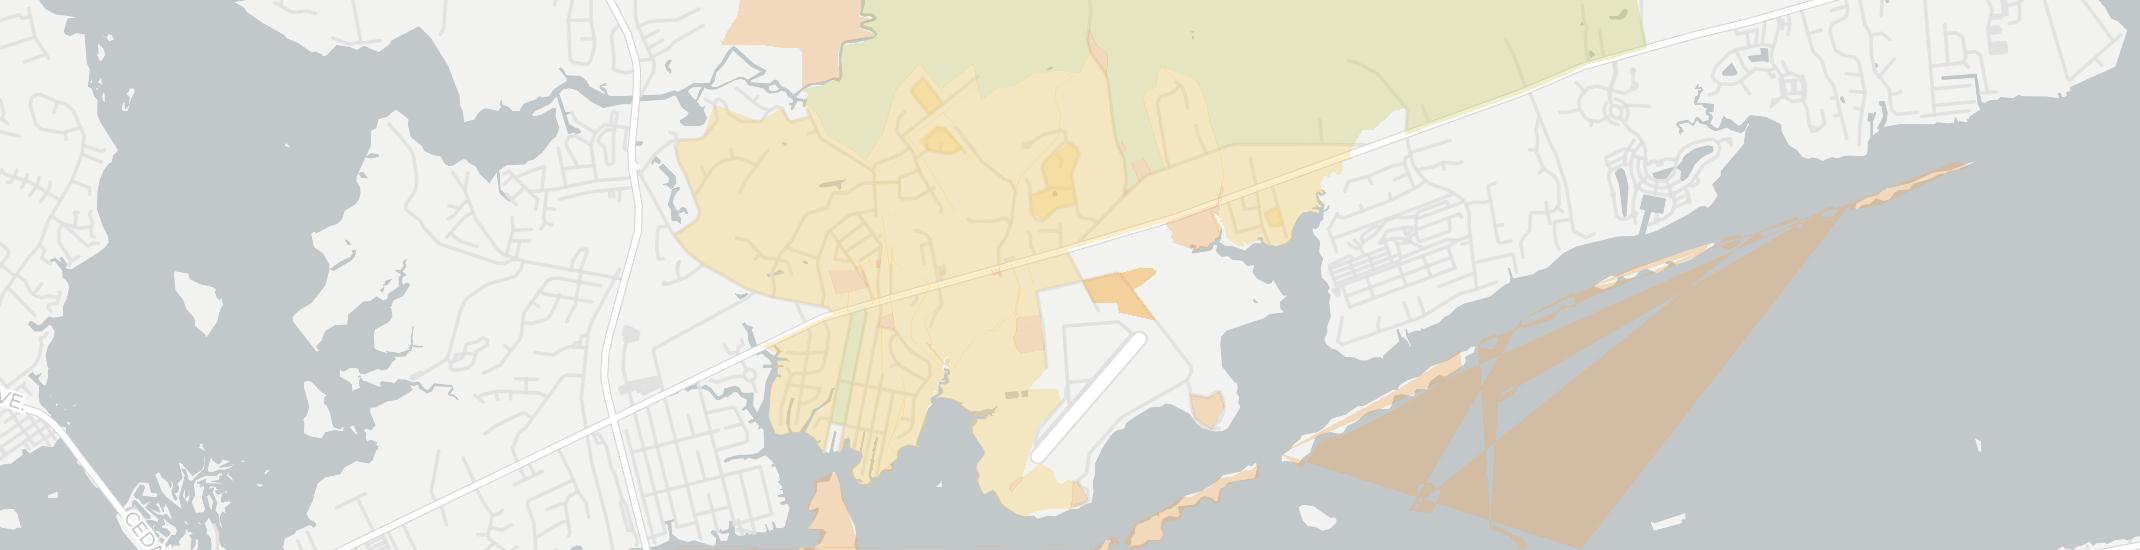 Bogue Internet Competition Map. Click for interactive map.